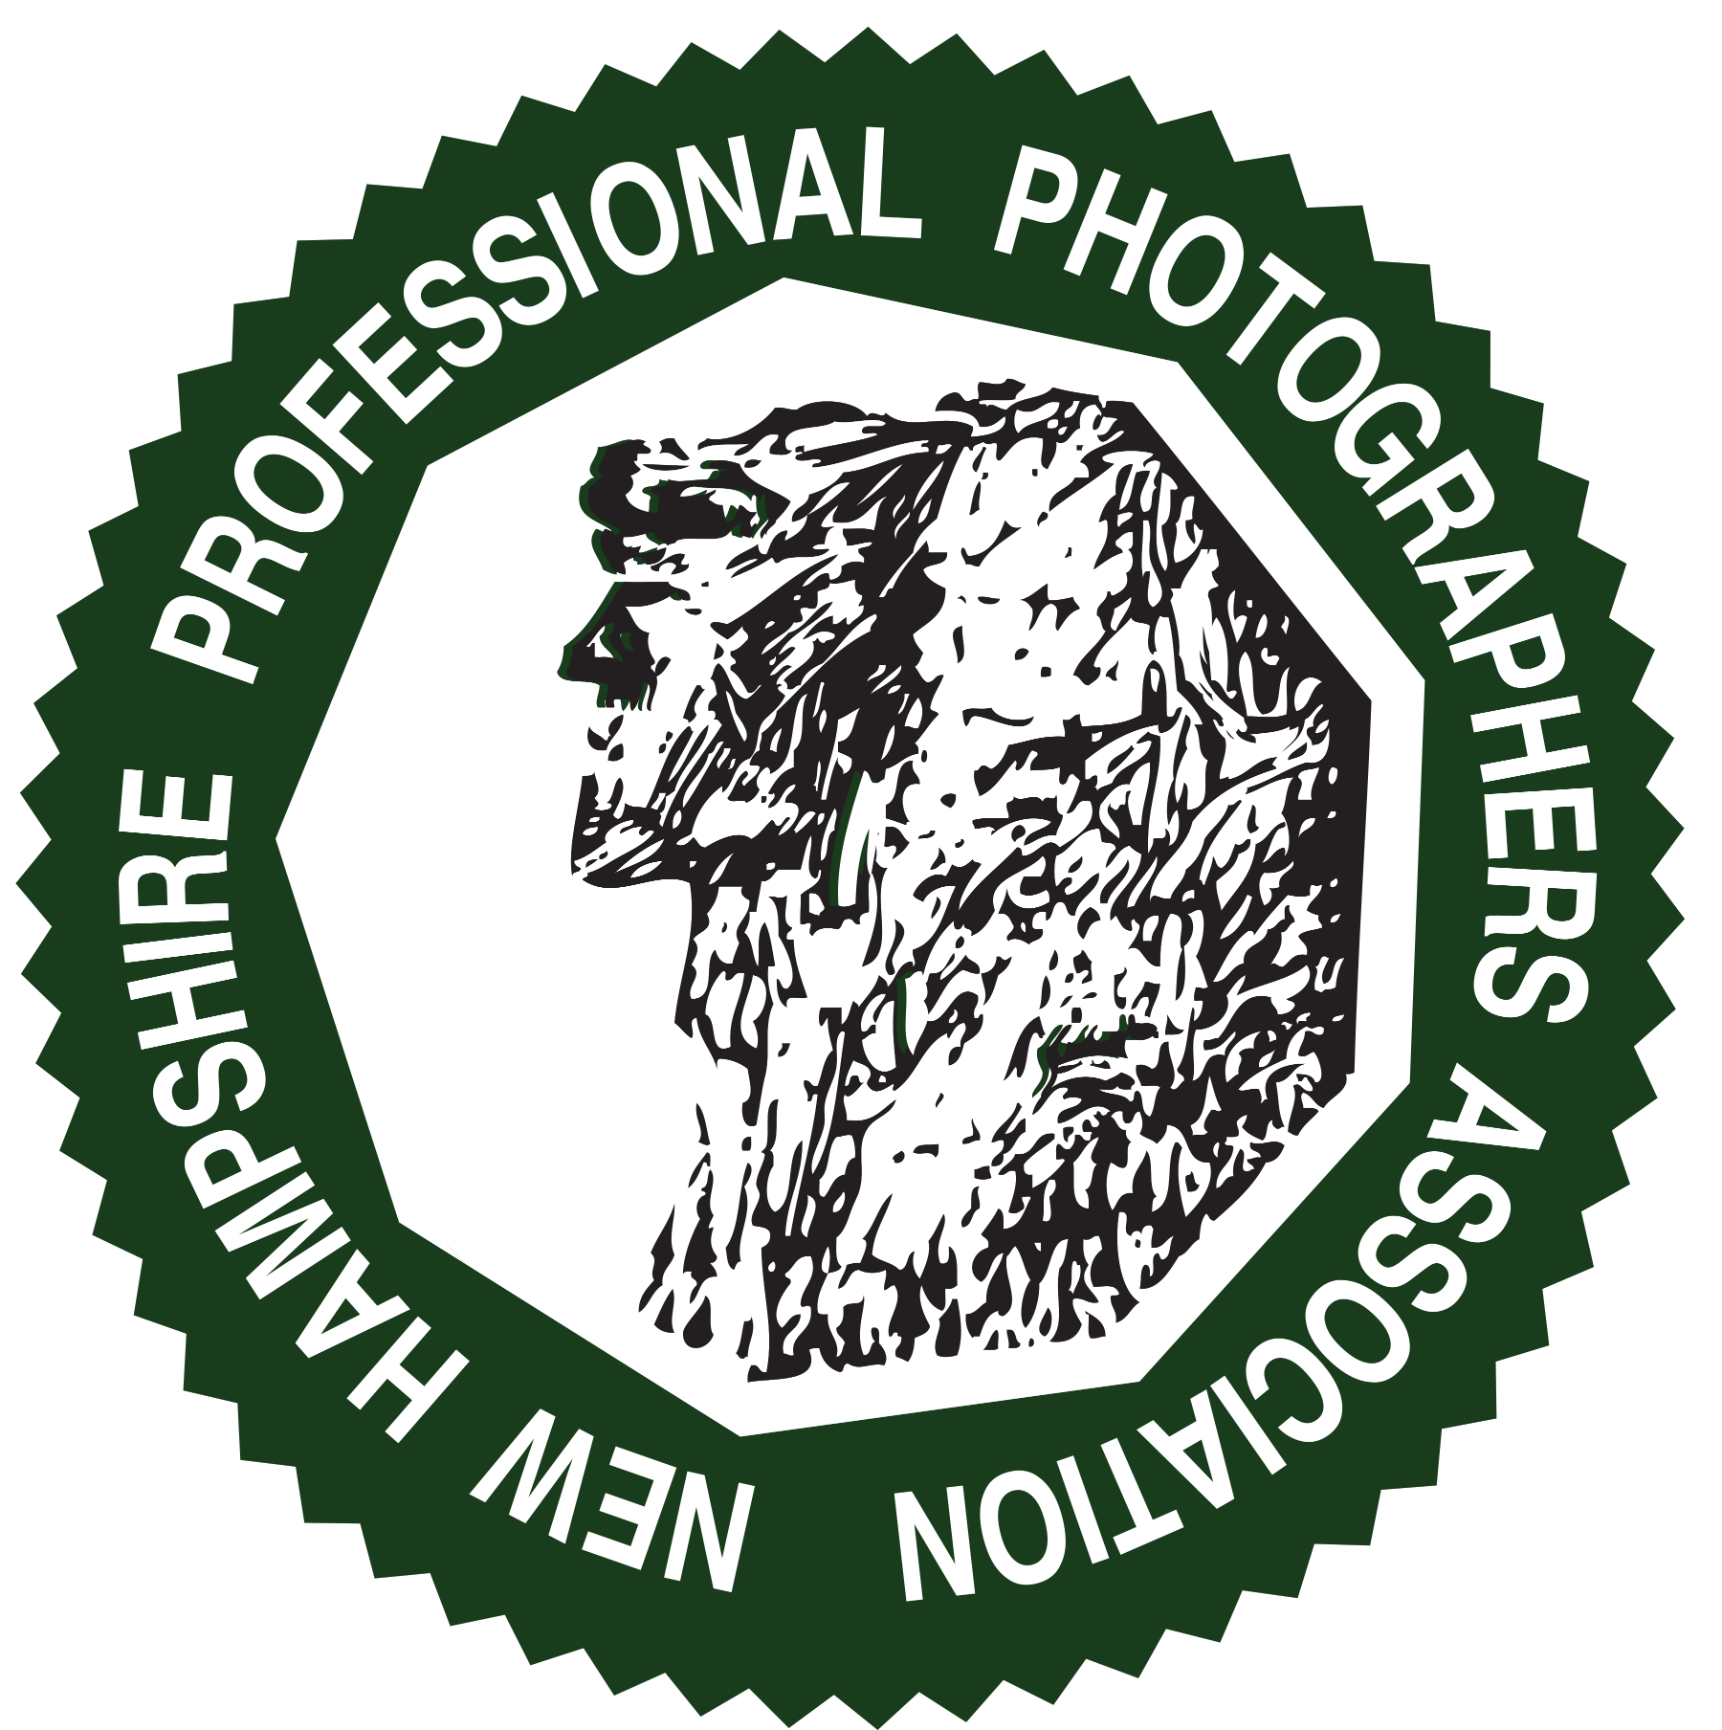 Member, New Hampshire Professional Photographers Association